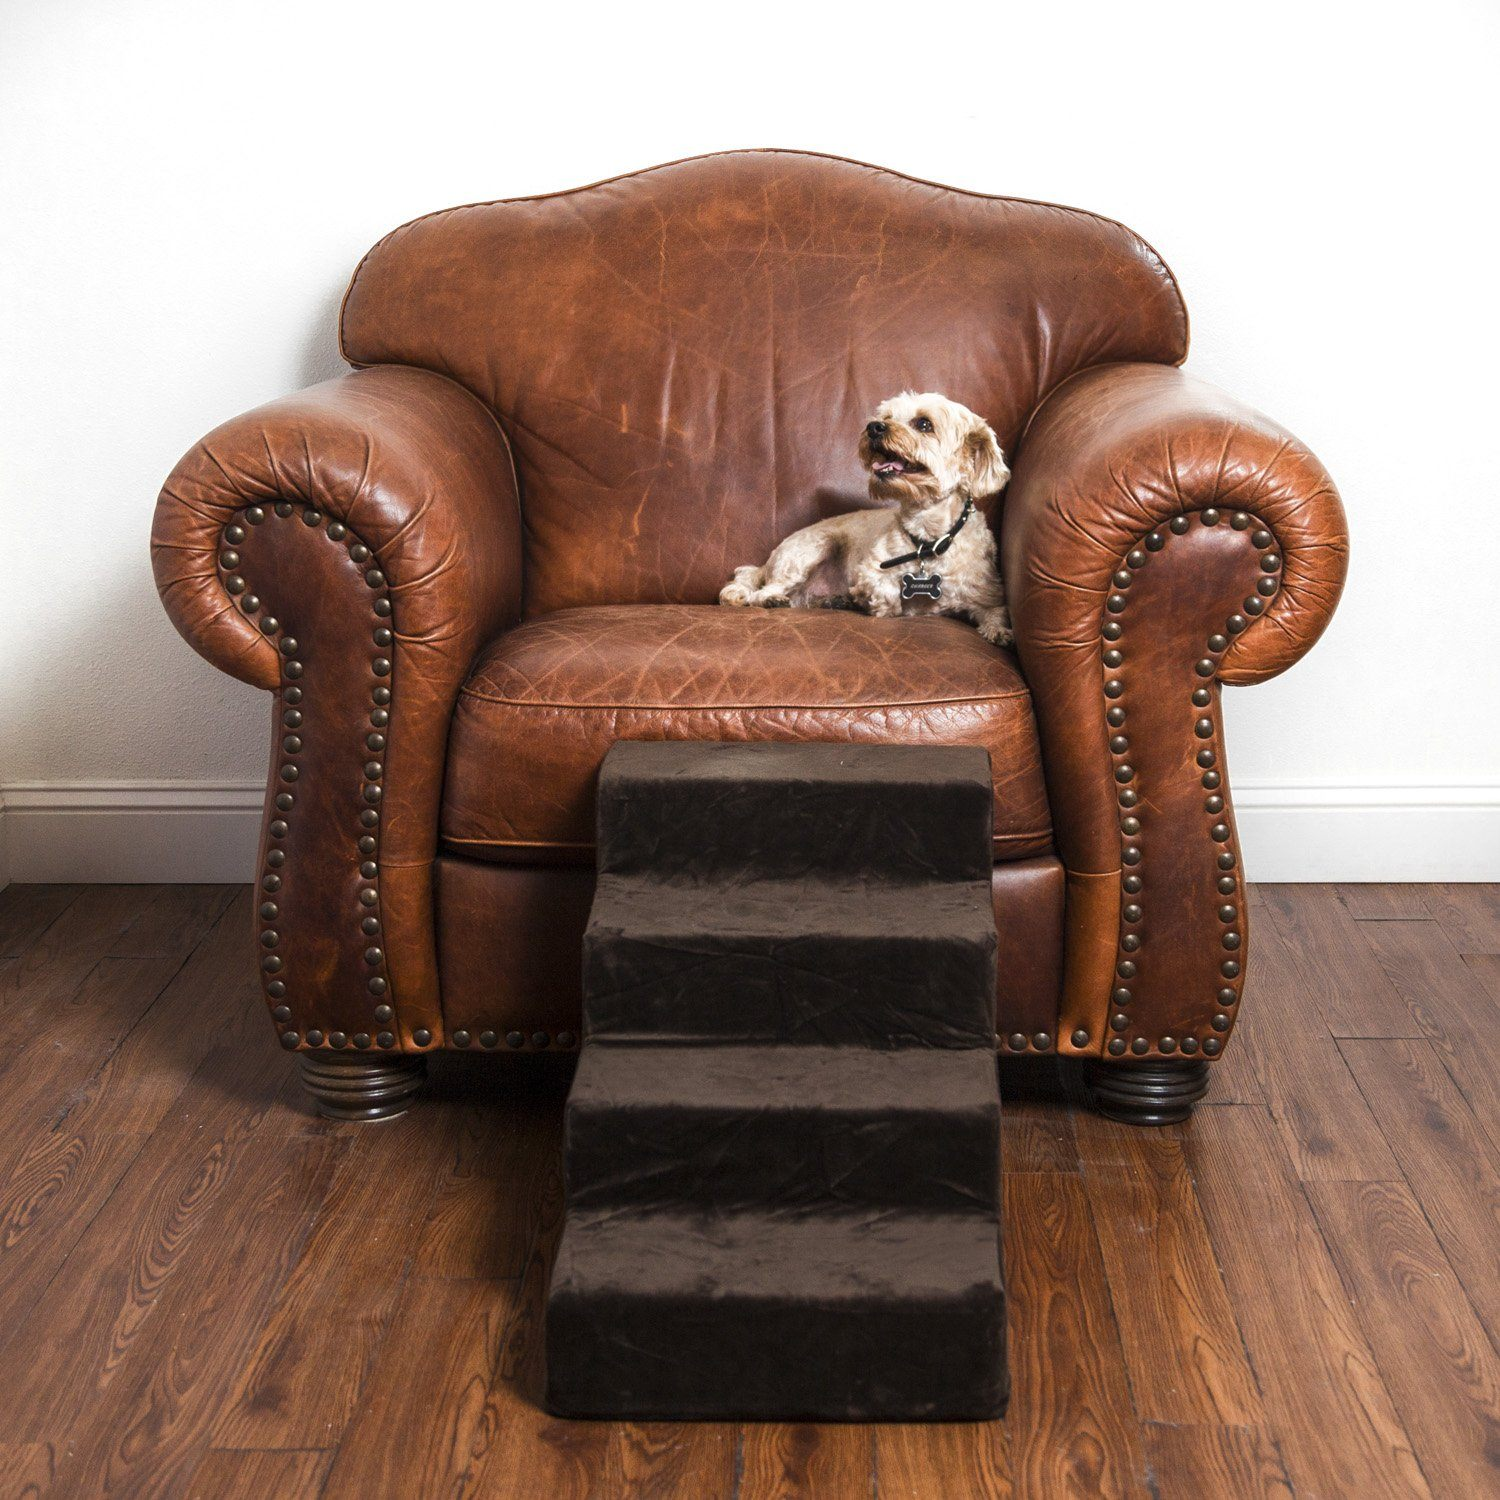 L.A. Dog Company® Pup Stairs - Animals Matter